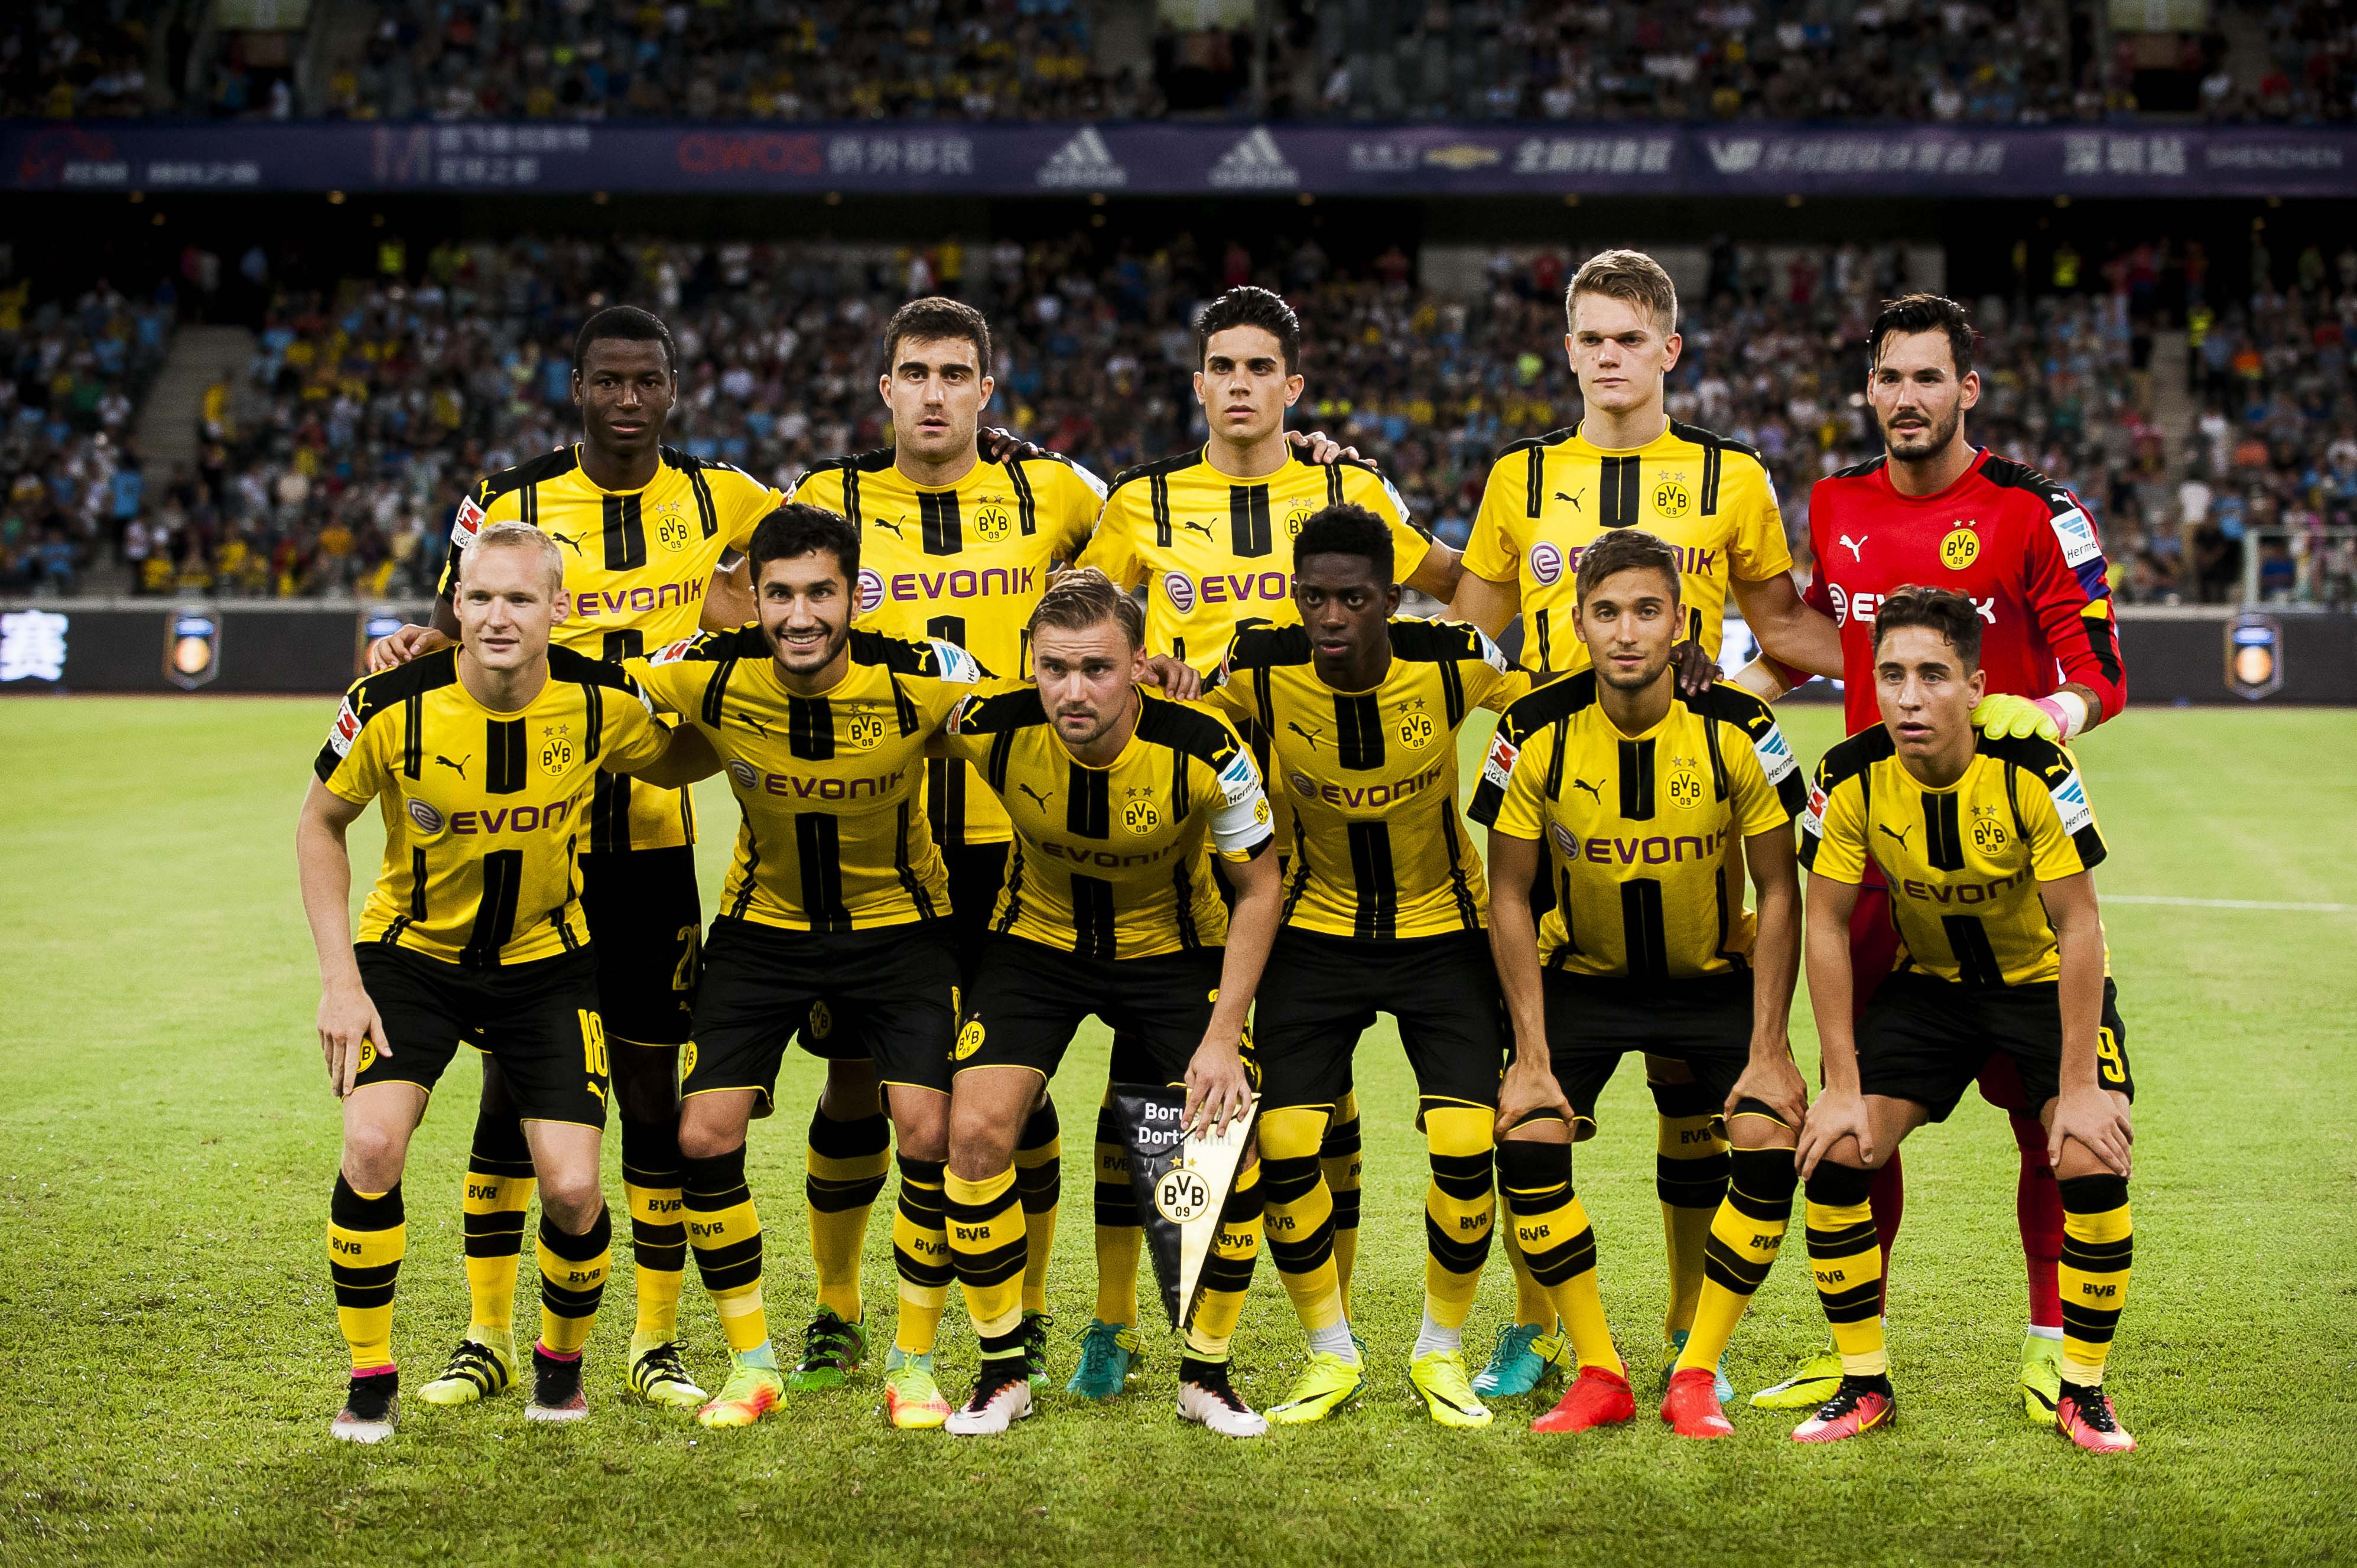 Free Download Borussia Dortmund Wallpapers Images Photos Pictures 3989x2654 For Your Desktop Mobile Tablet Explore 97 Russia National Football Team Wallpapers Russia National Football Team Wallpapers Morocco National Football